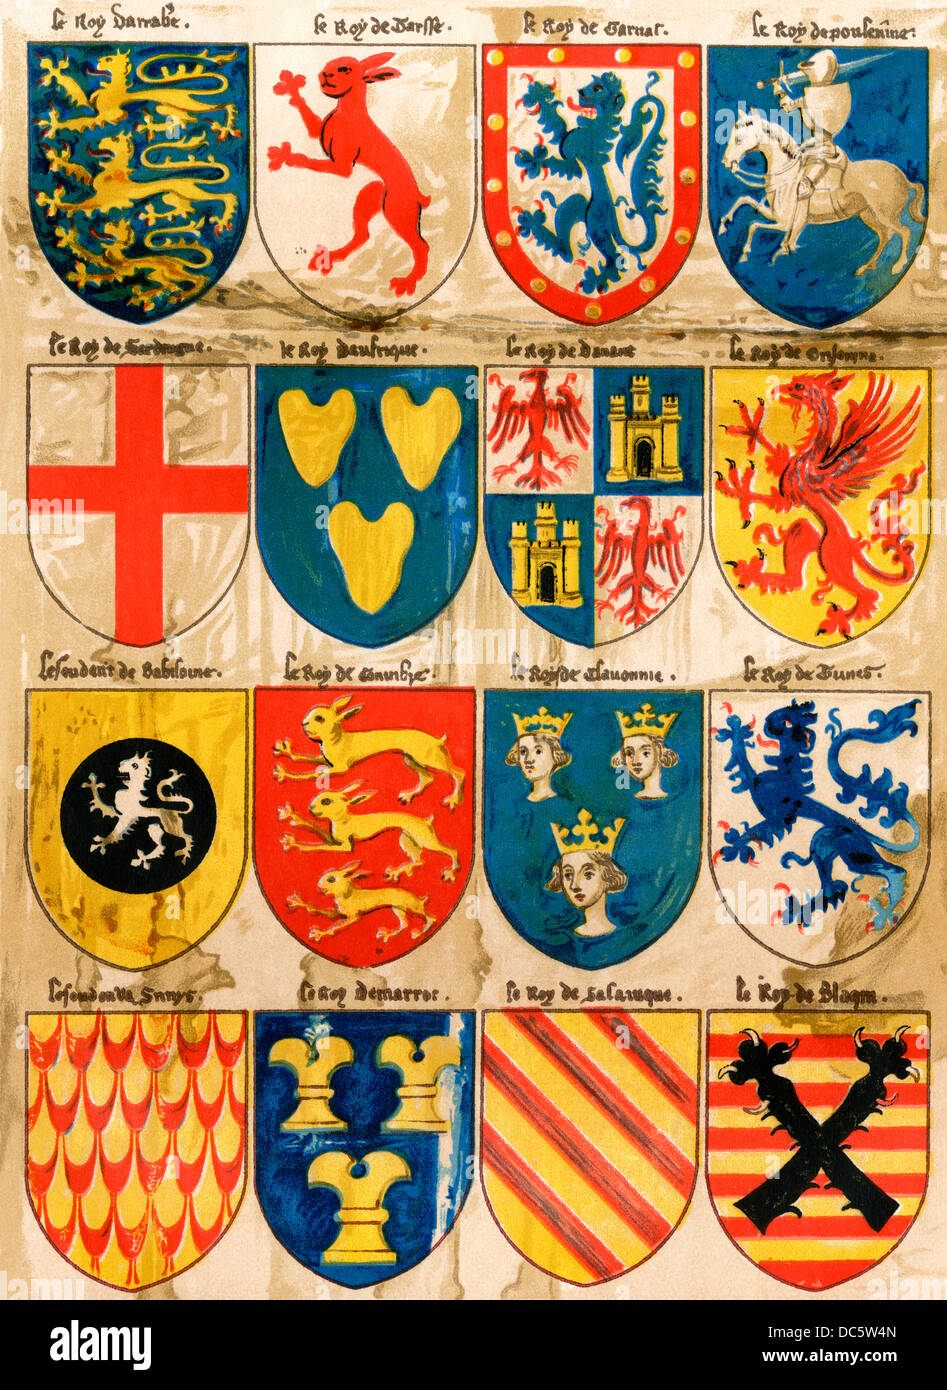 Shields with arms of mostly mythical sovereigns, made by an English painter, 1400s. Color lithograph reproduction - Stock Image